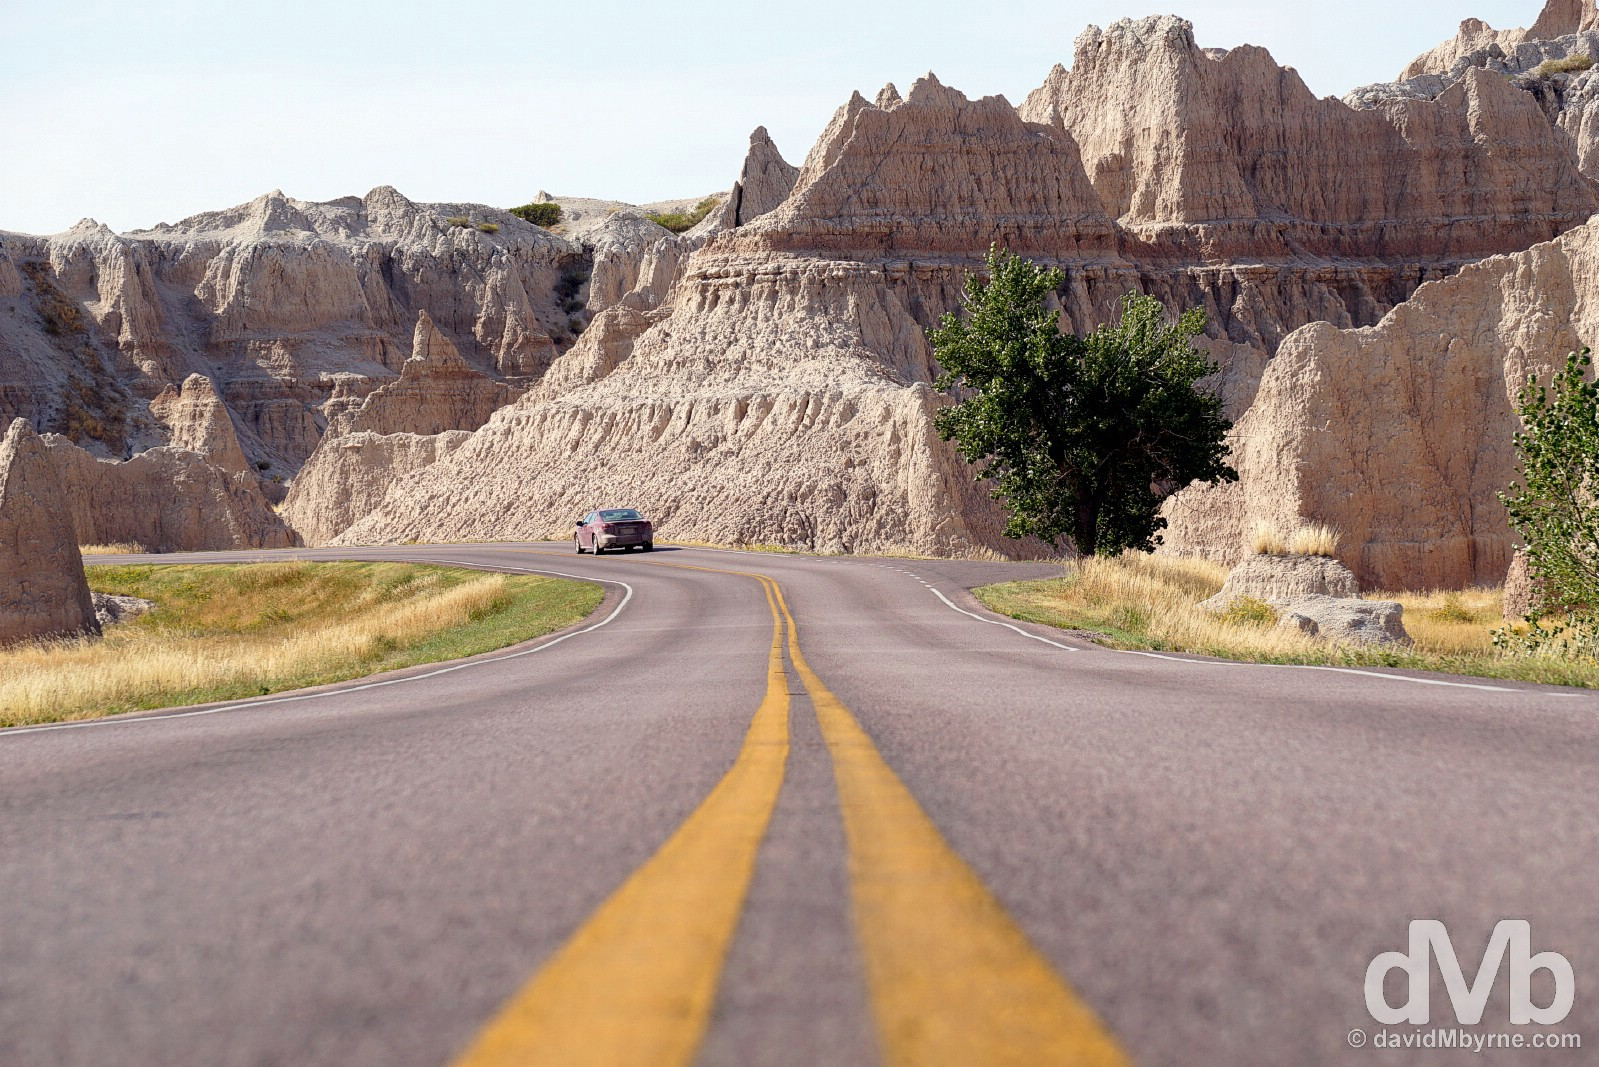 Driving a portion of the Badlands Loop in Badlands National Park, South Dakota. September 1, 2016.